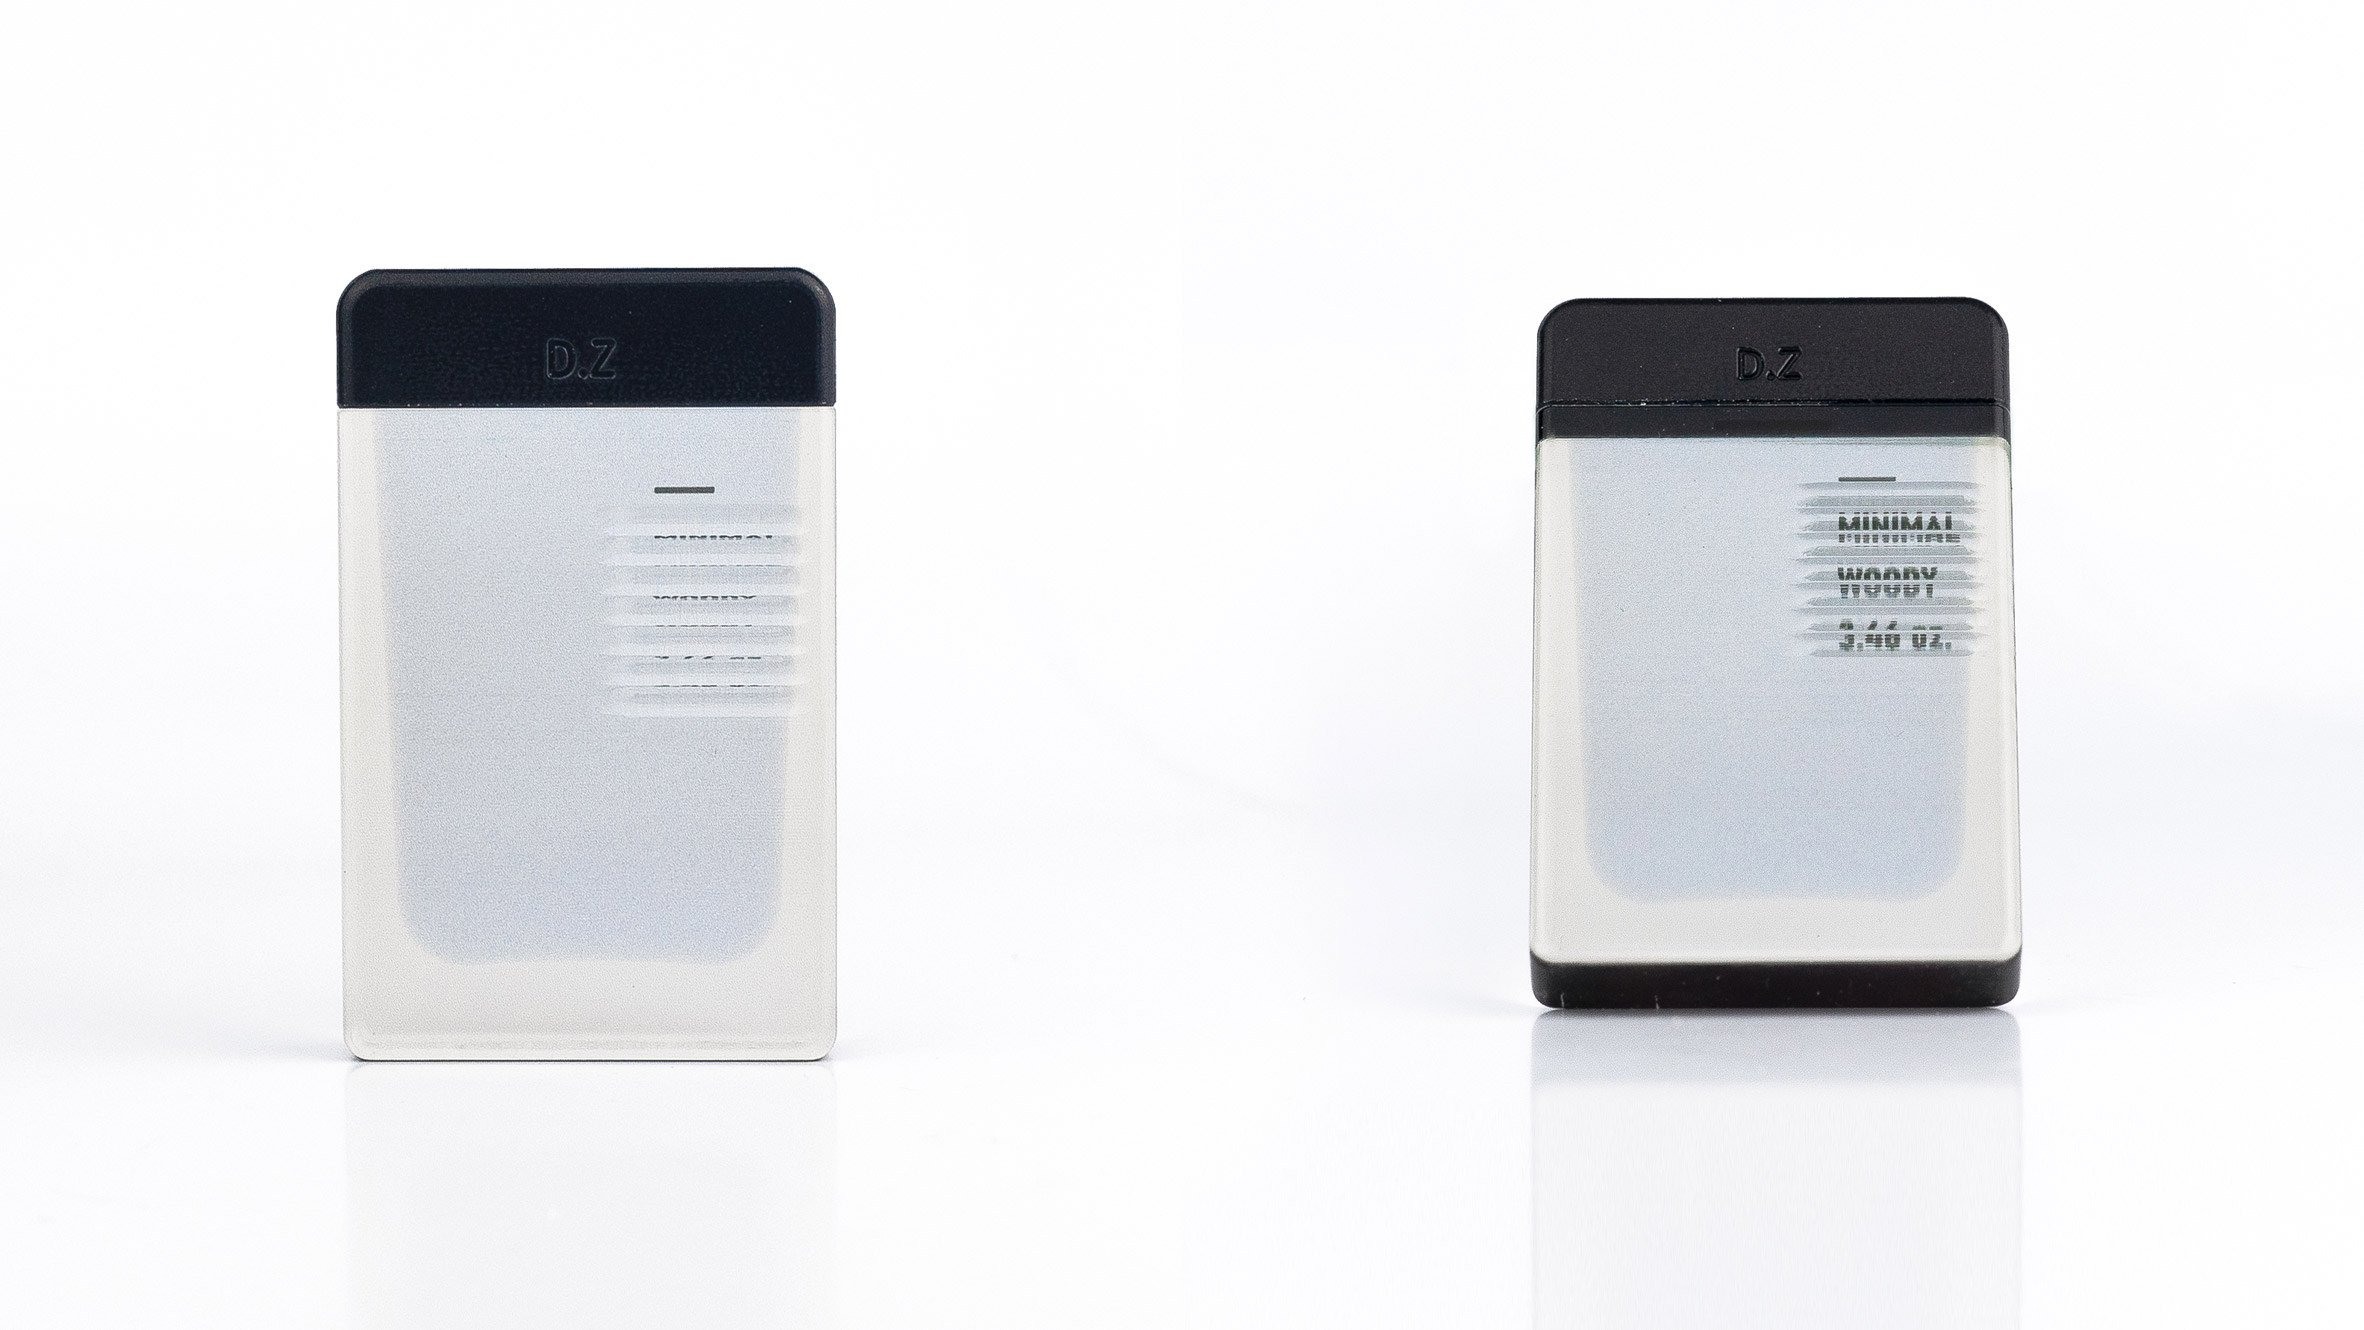 Nseen perfume bottle from Jiani Zeng and Honghao Deng's Illusory Material project